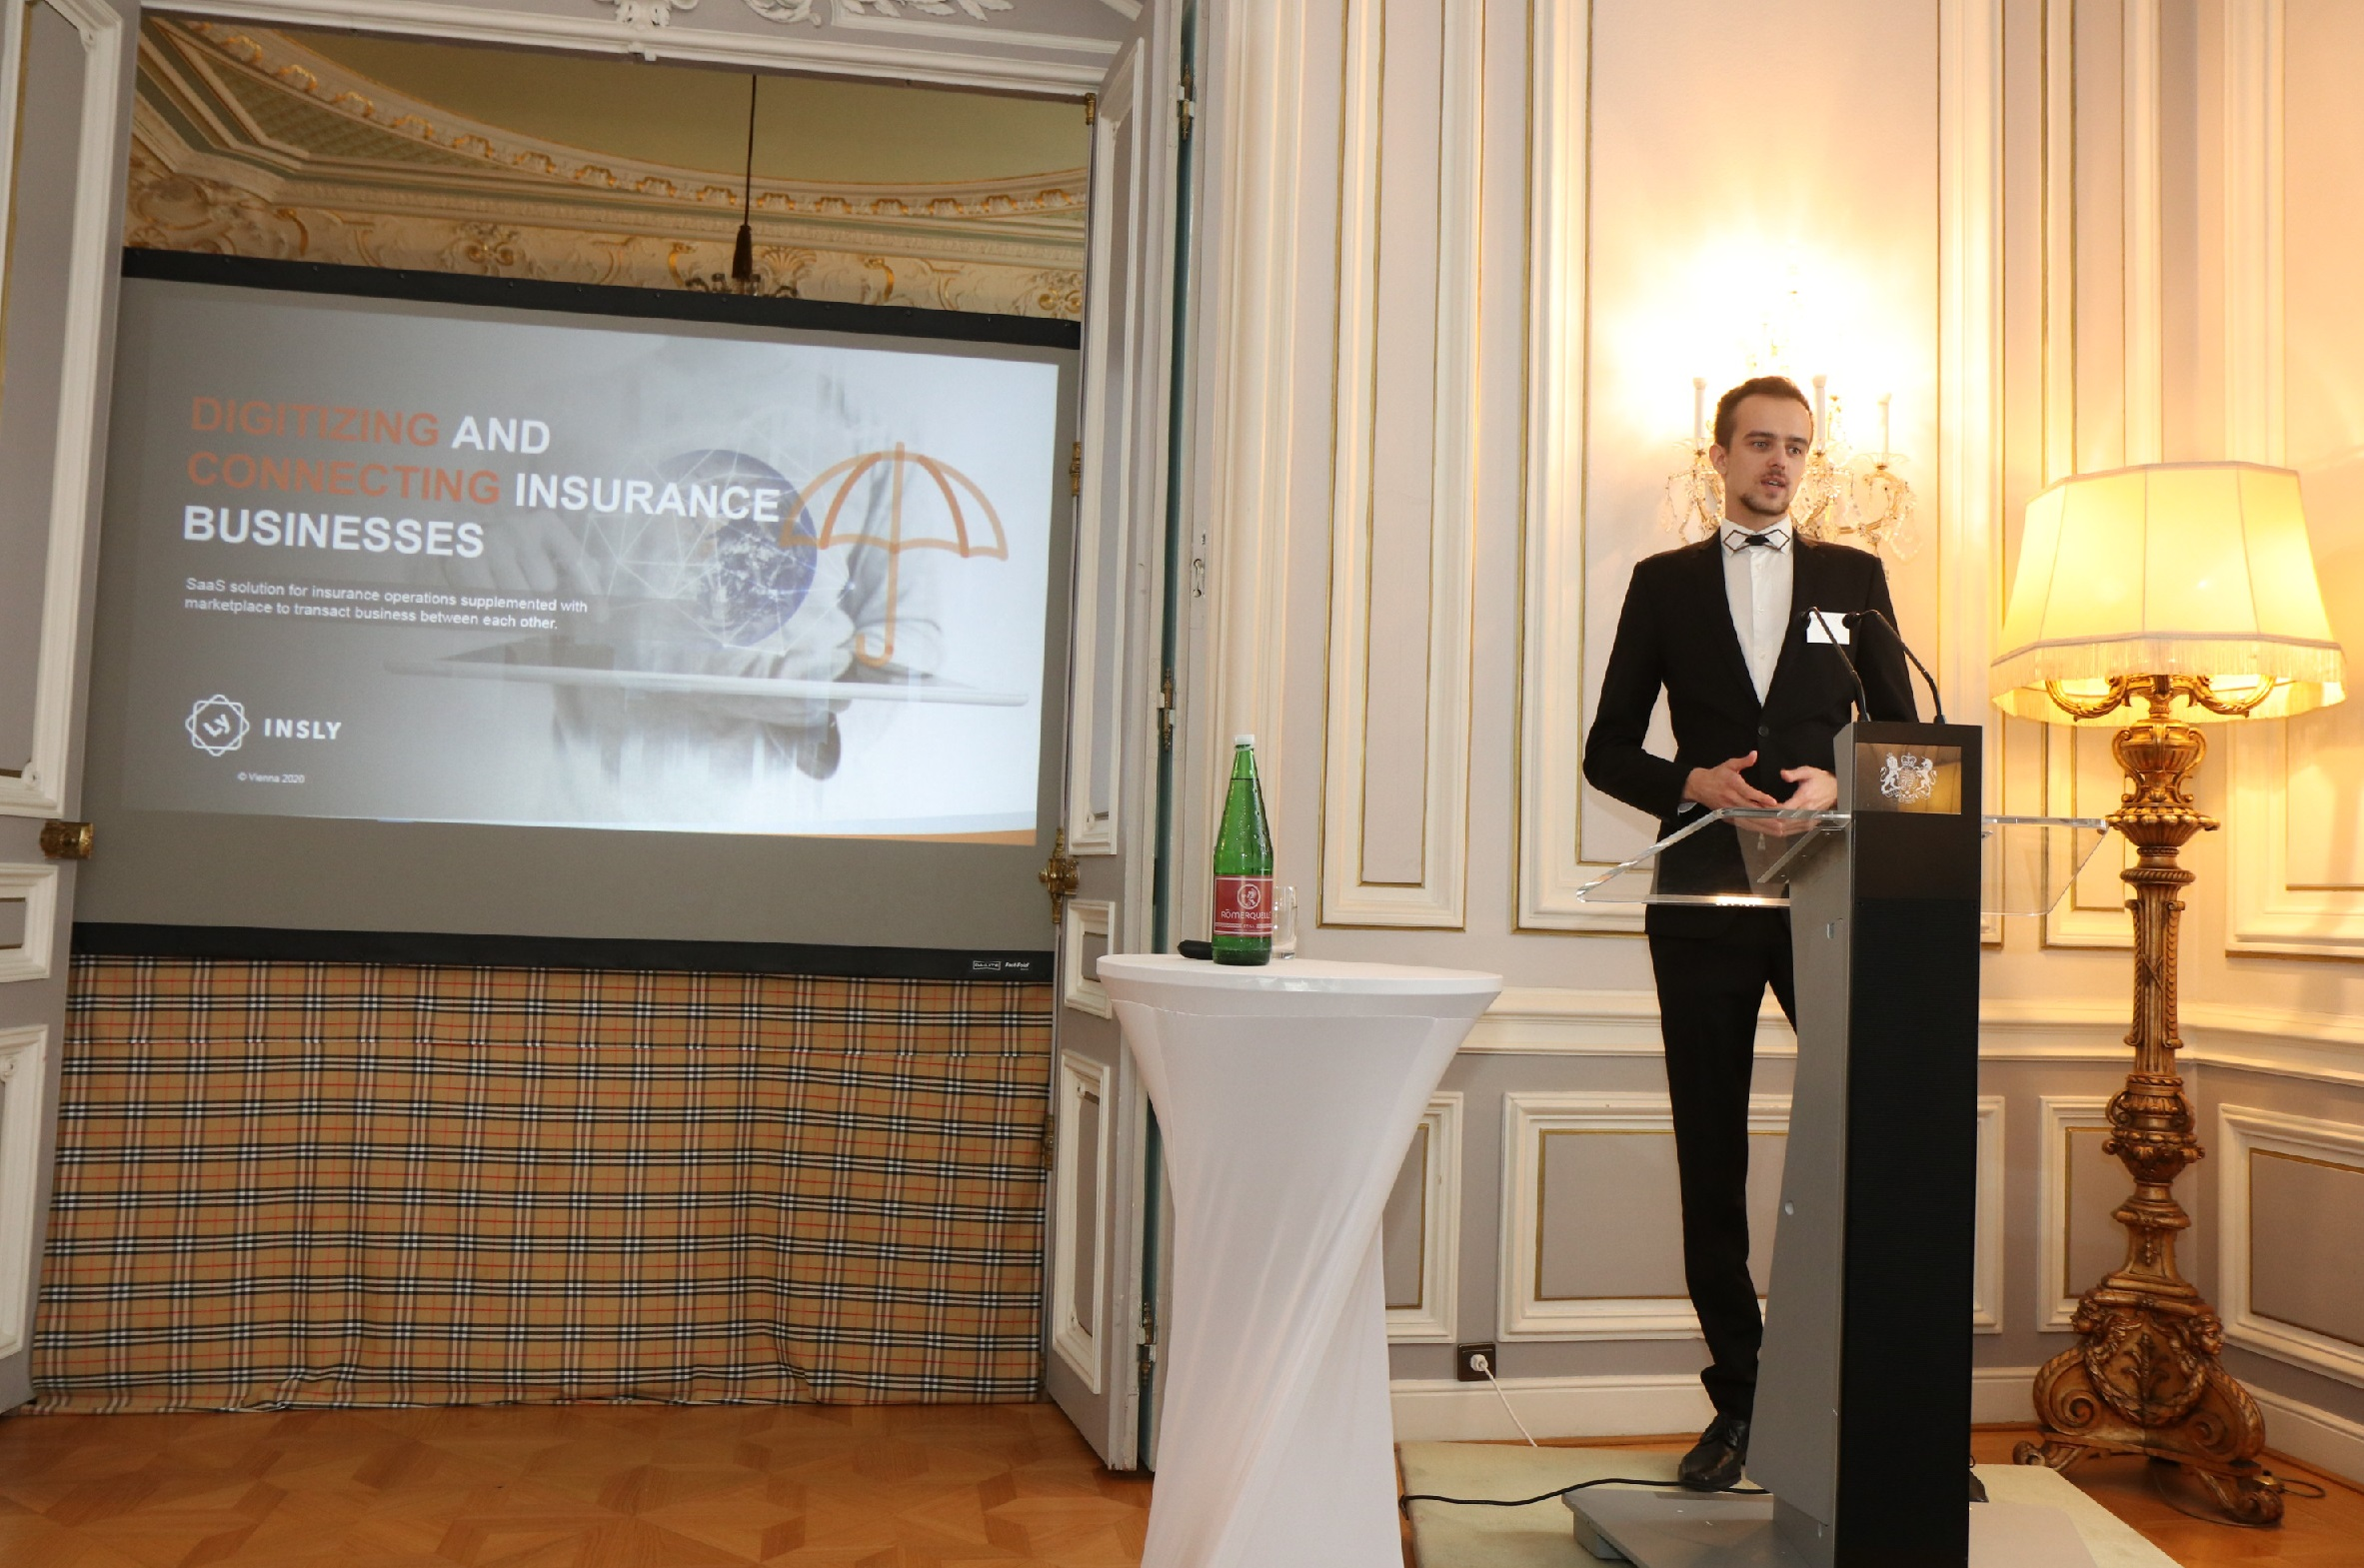 Insly @ UK Fintech mission to Austria